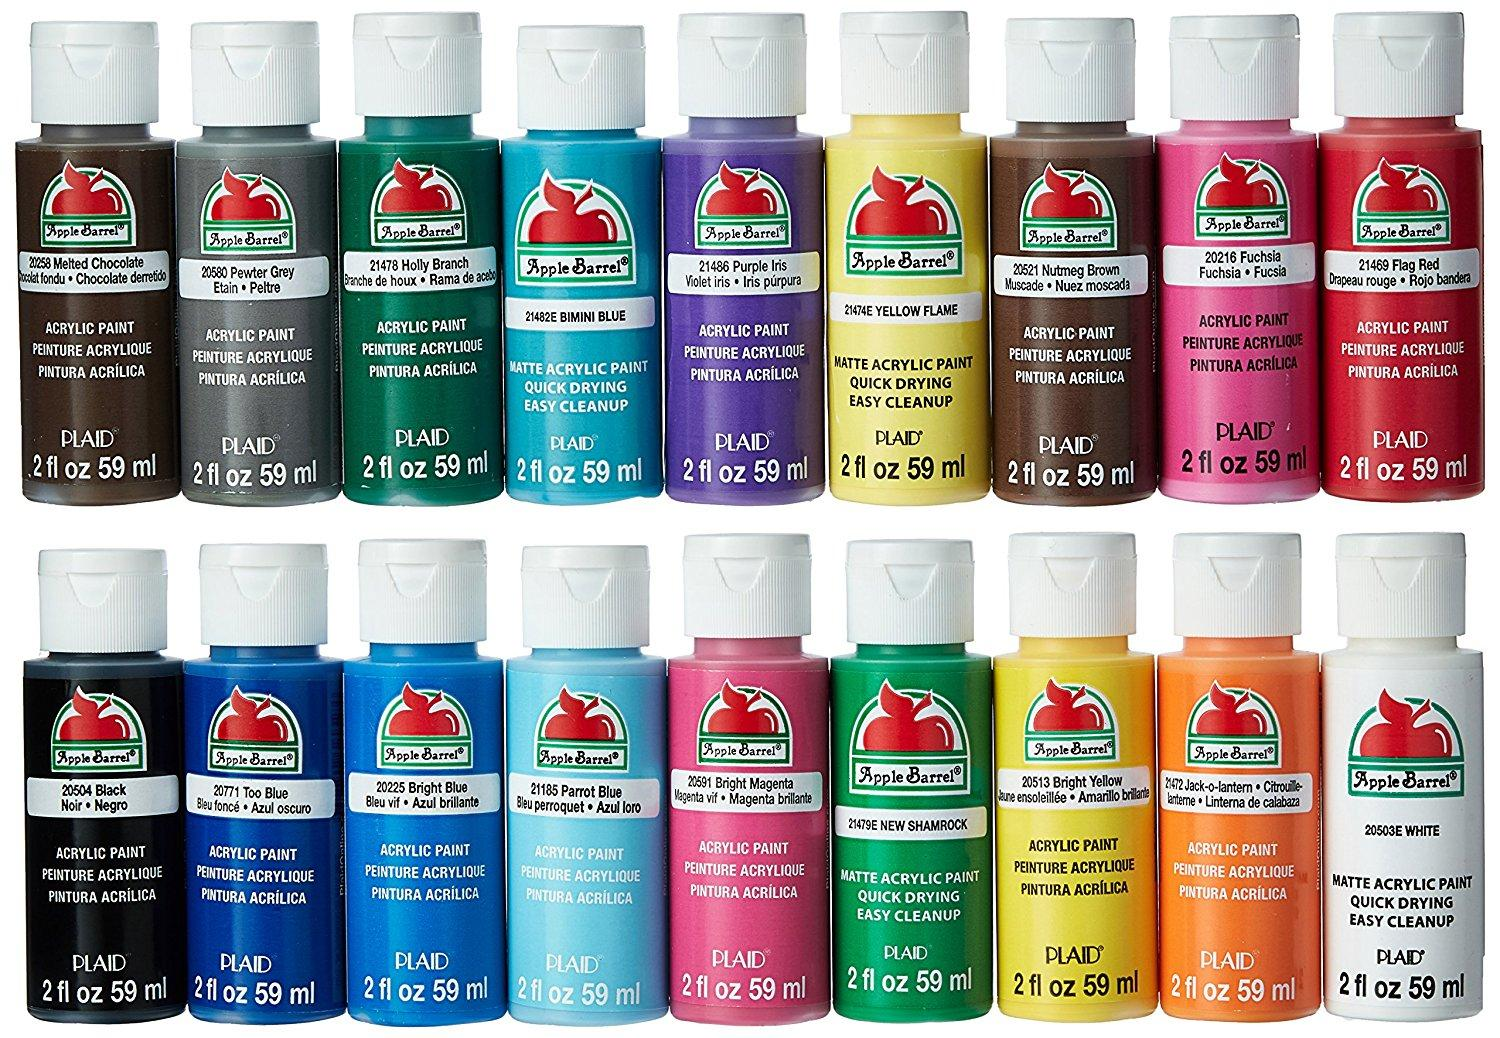 Can Apple Barrel Acrylic Paint Be Used On Fabric